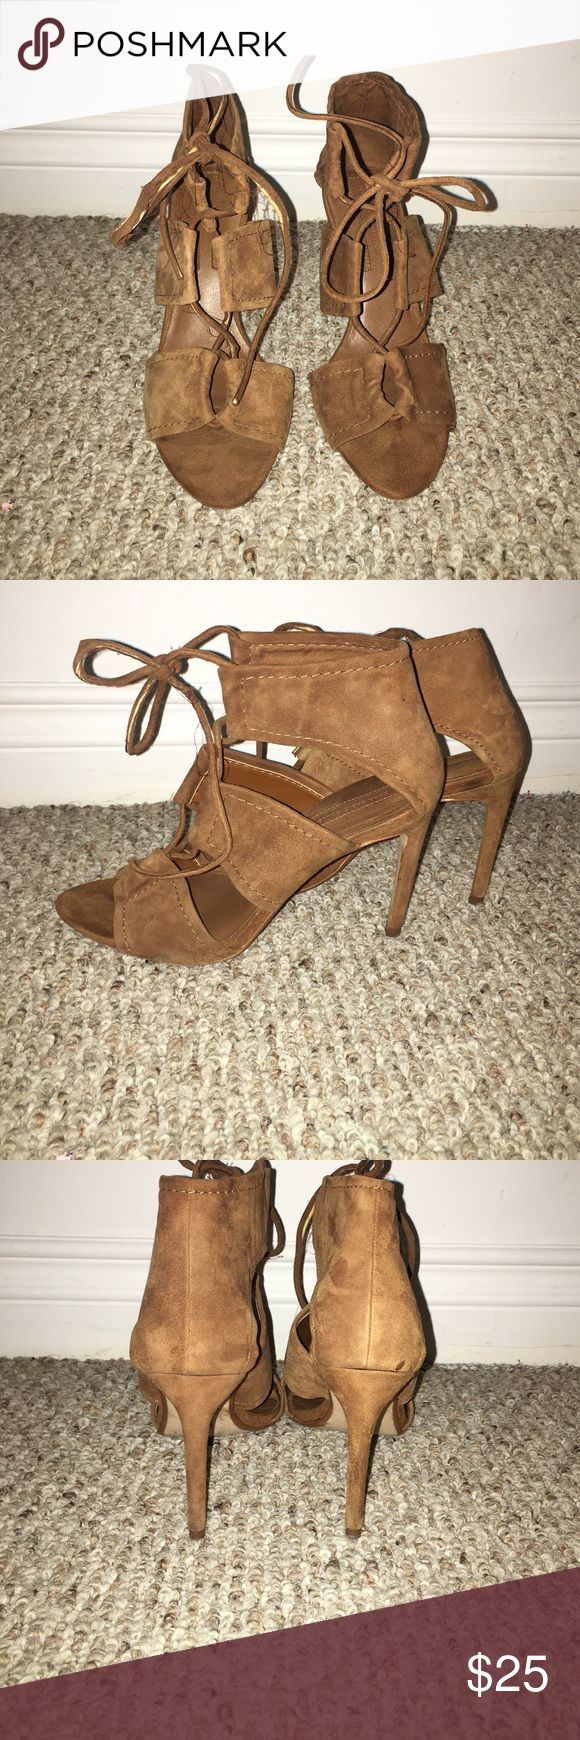 Zara suede shoes Very sexy and gladiator inspired heel. Will need new laces. Very flattering on olive skin tones or a nice tan... 🌞🌞🌞 Zara Shoes Heels